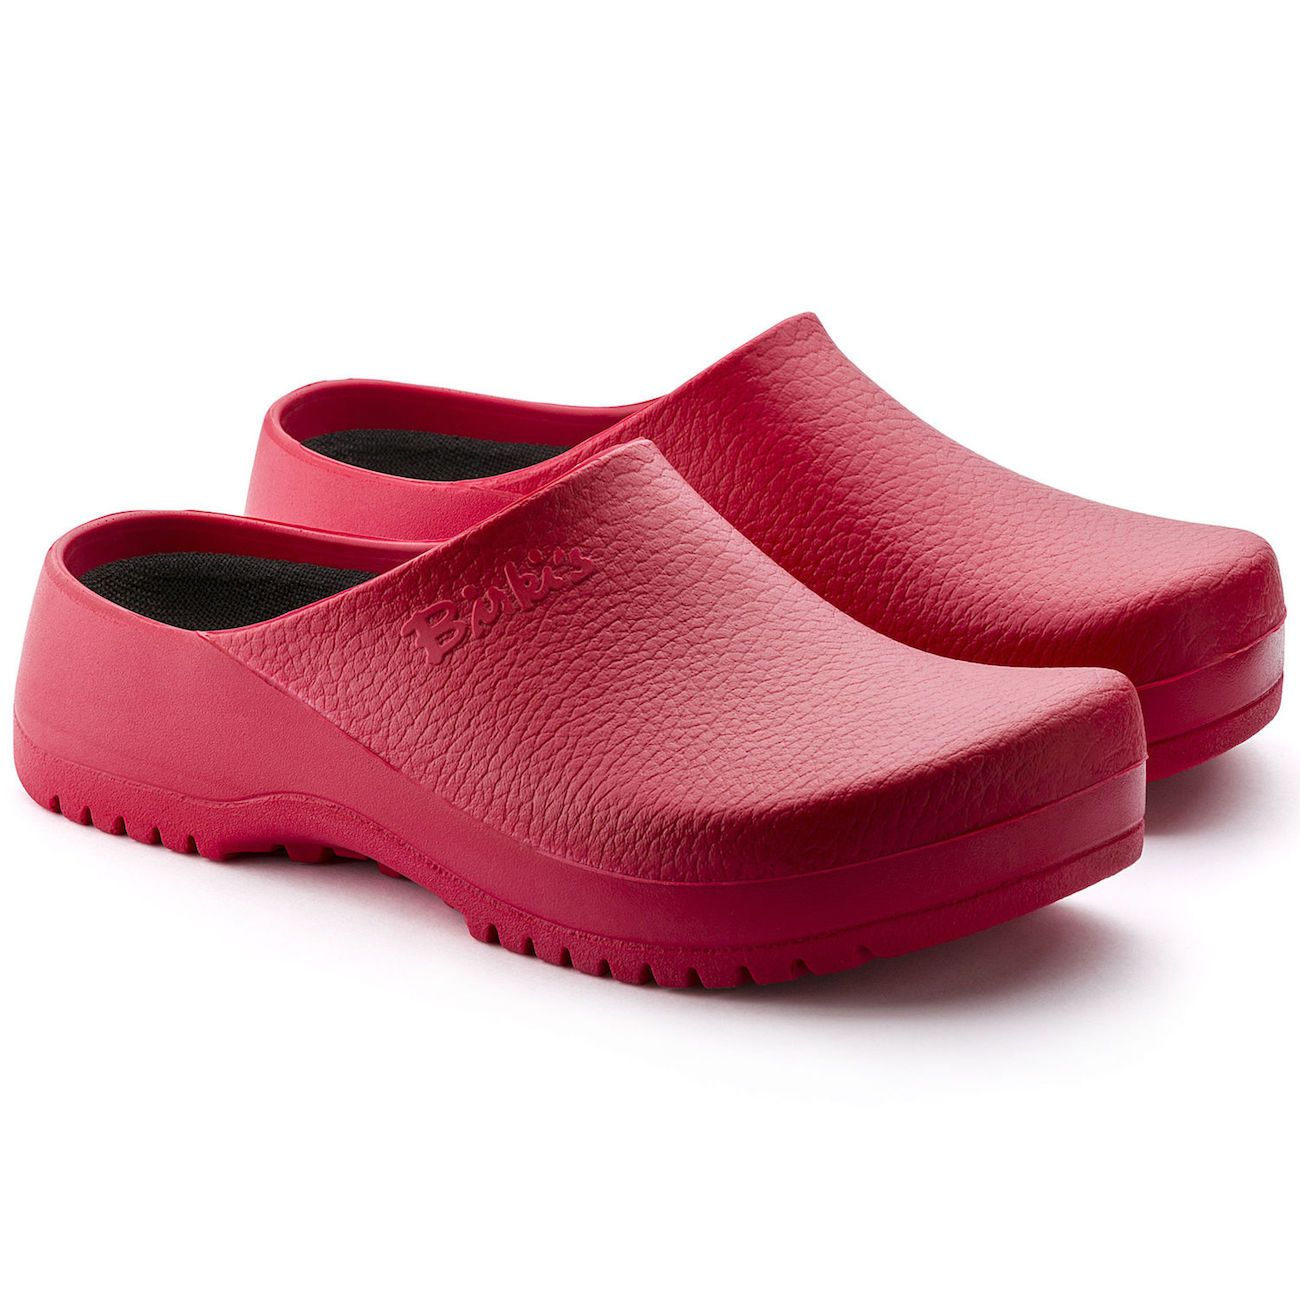 Birkenstock Professional, Super-Birki, Regular Fit, ALPRO-foam, Red Clogs Birkenstock Professional Red 46